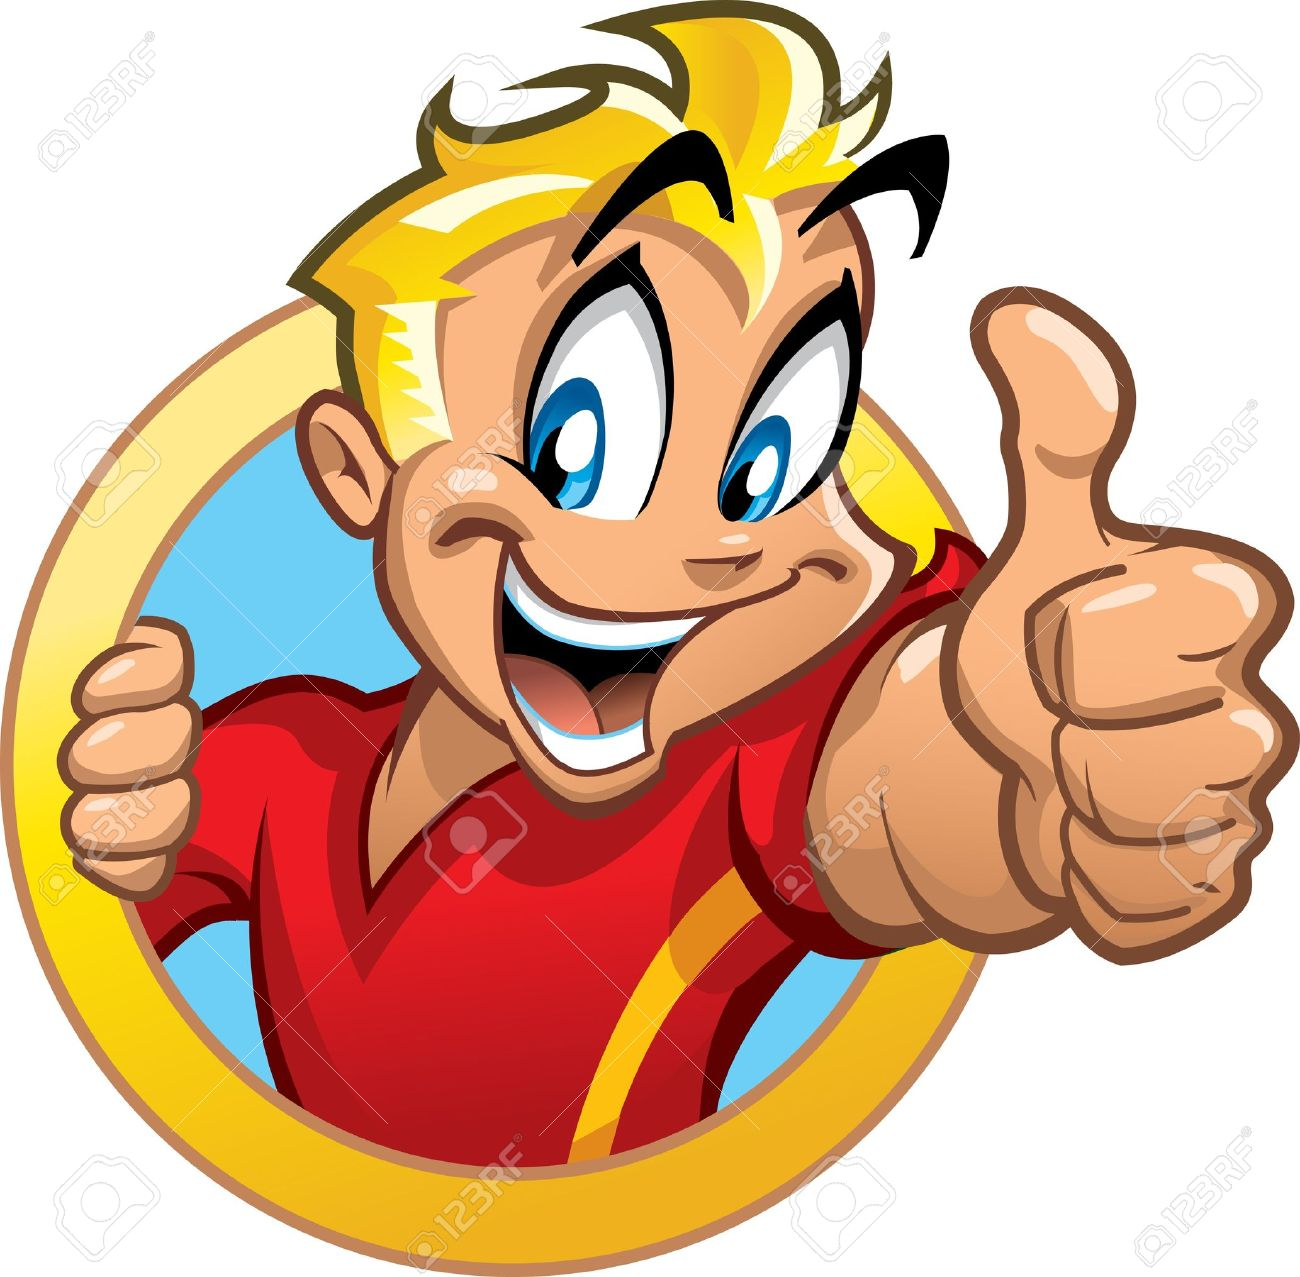 Thumbs up person clipart jpg royalty free download Happy Smiling Excited Blonde Boy In Circle Banner Holding Thumbs ... jpg royalty free download